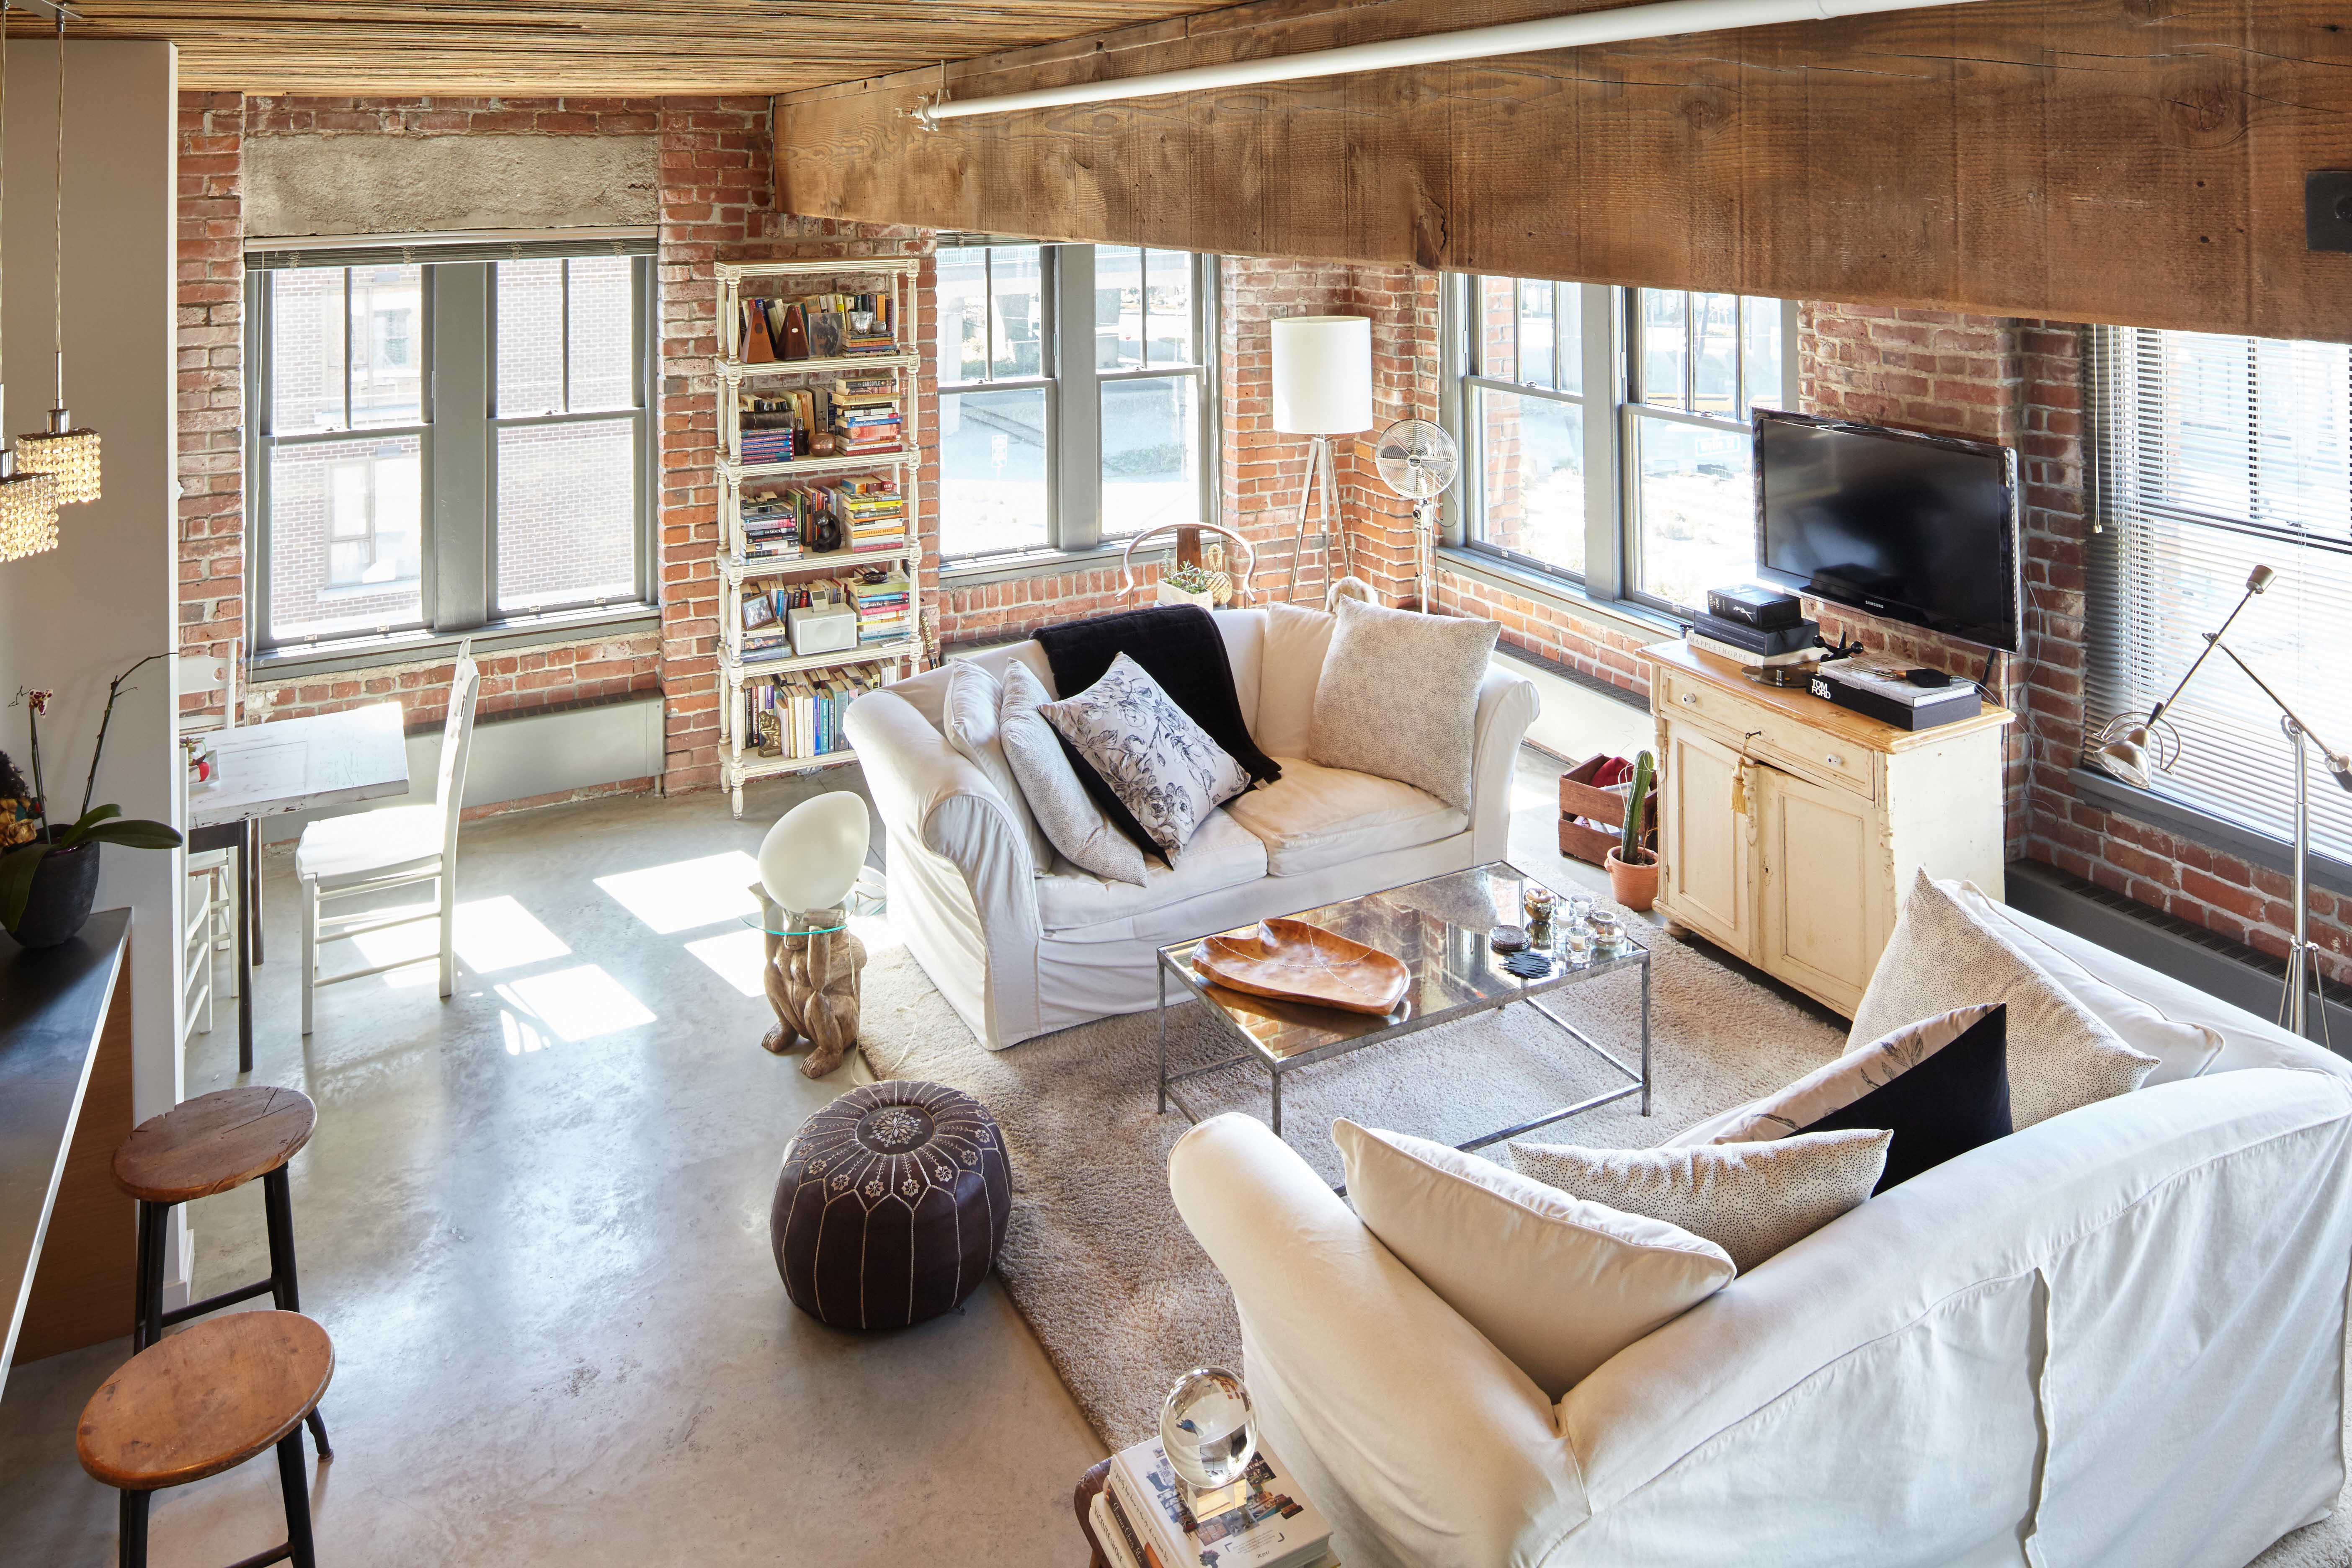 new york loft style living room decorating ideas with brick fireplace adaptive re use through spacing vancouver